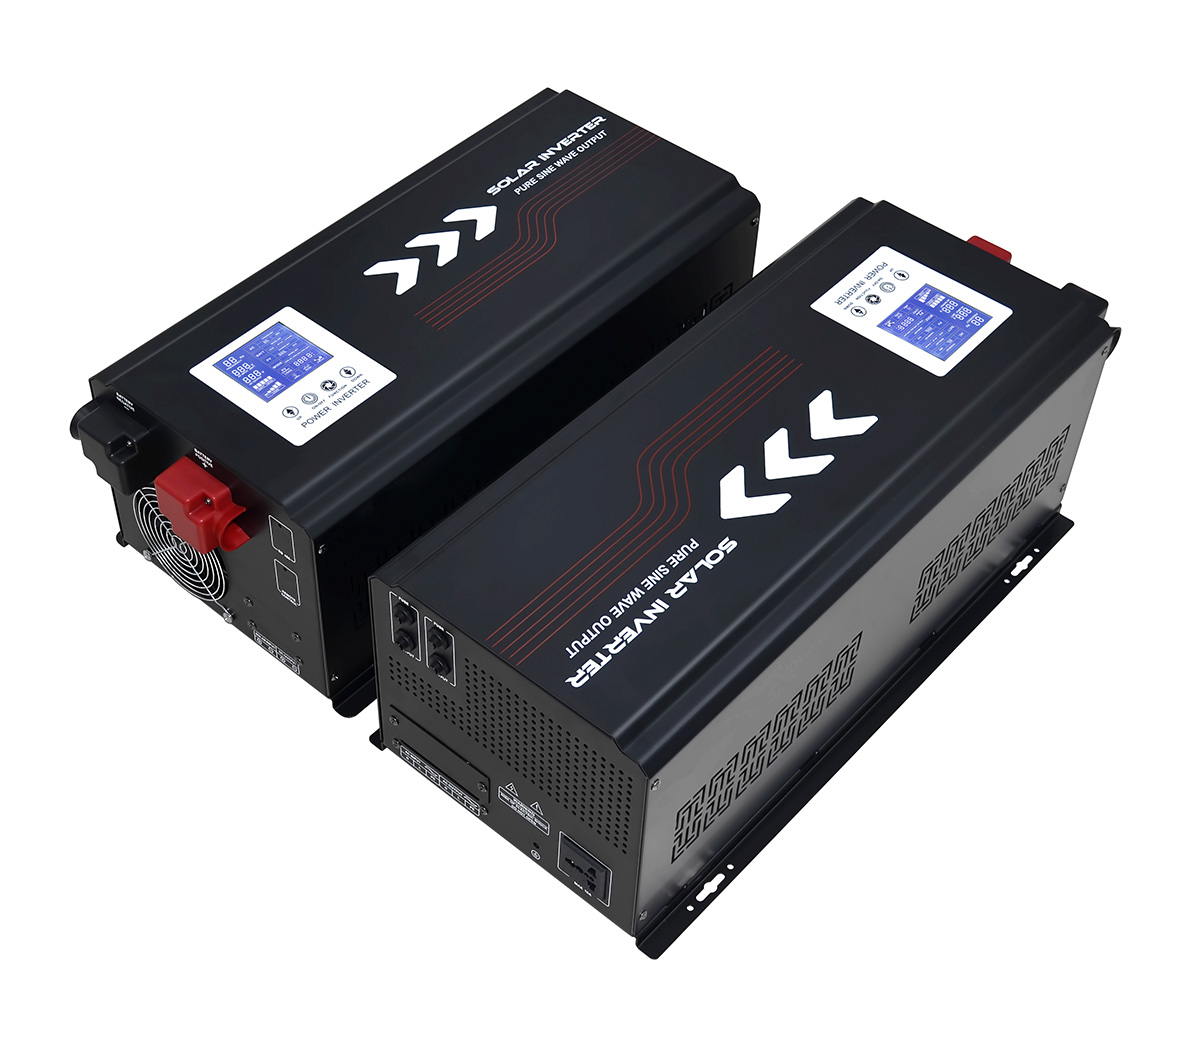 W10 Low frequency inverter